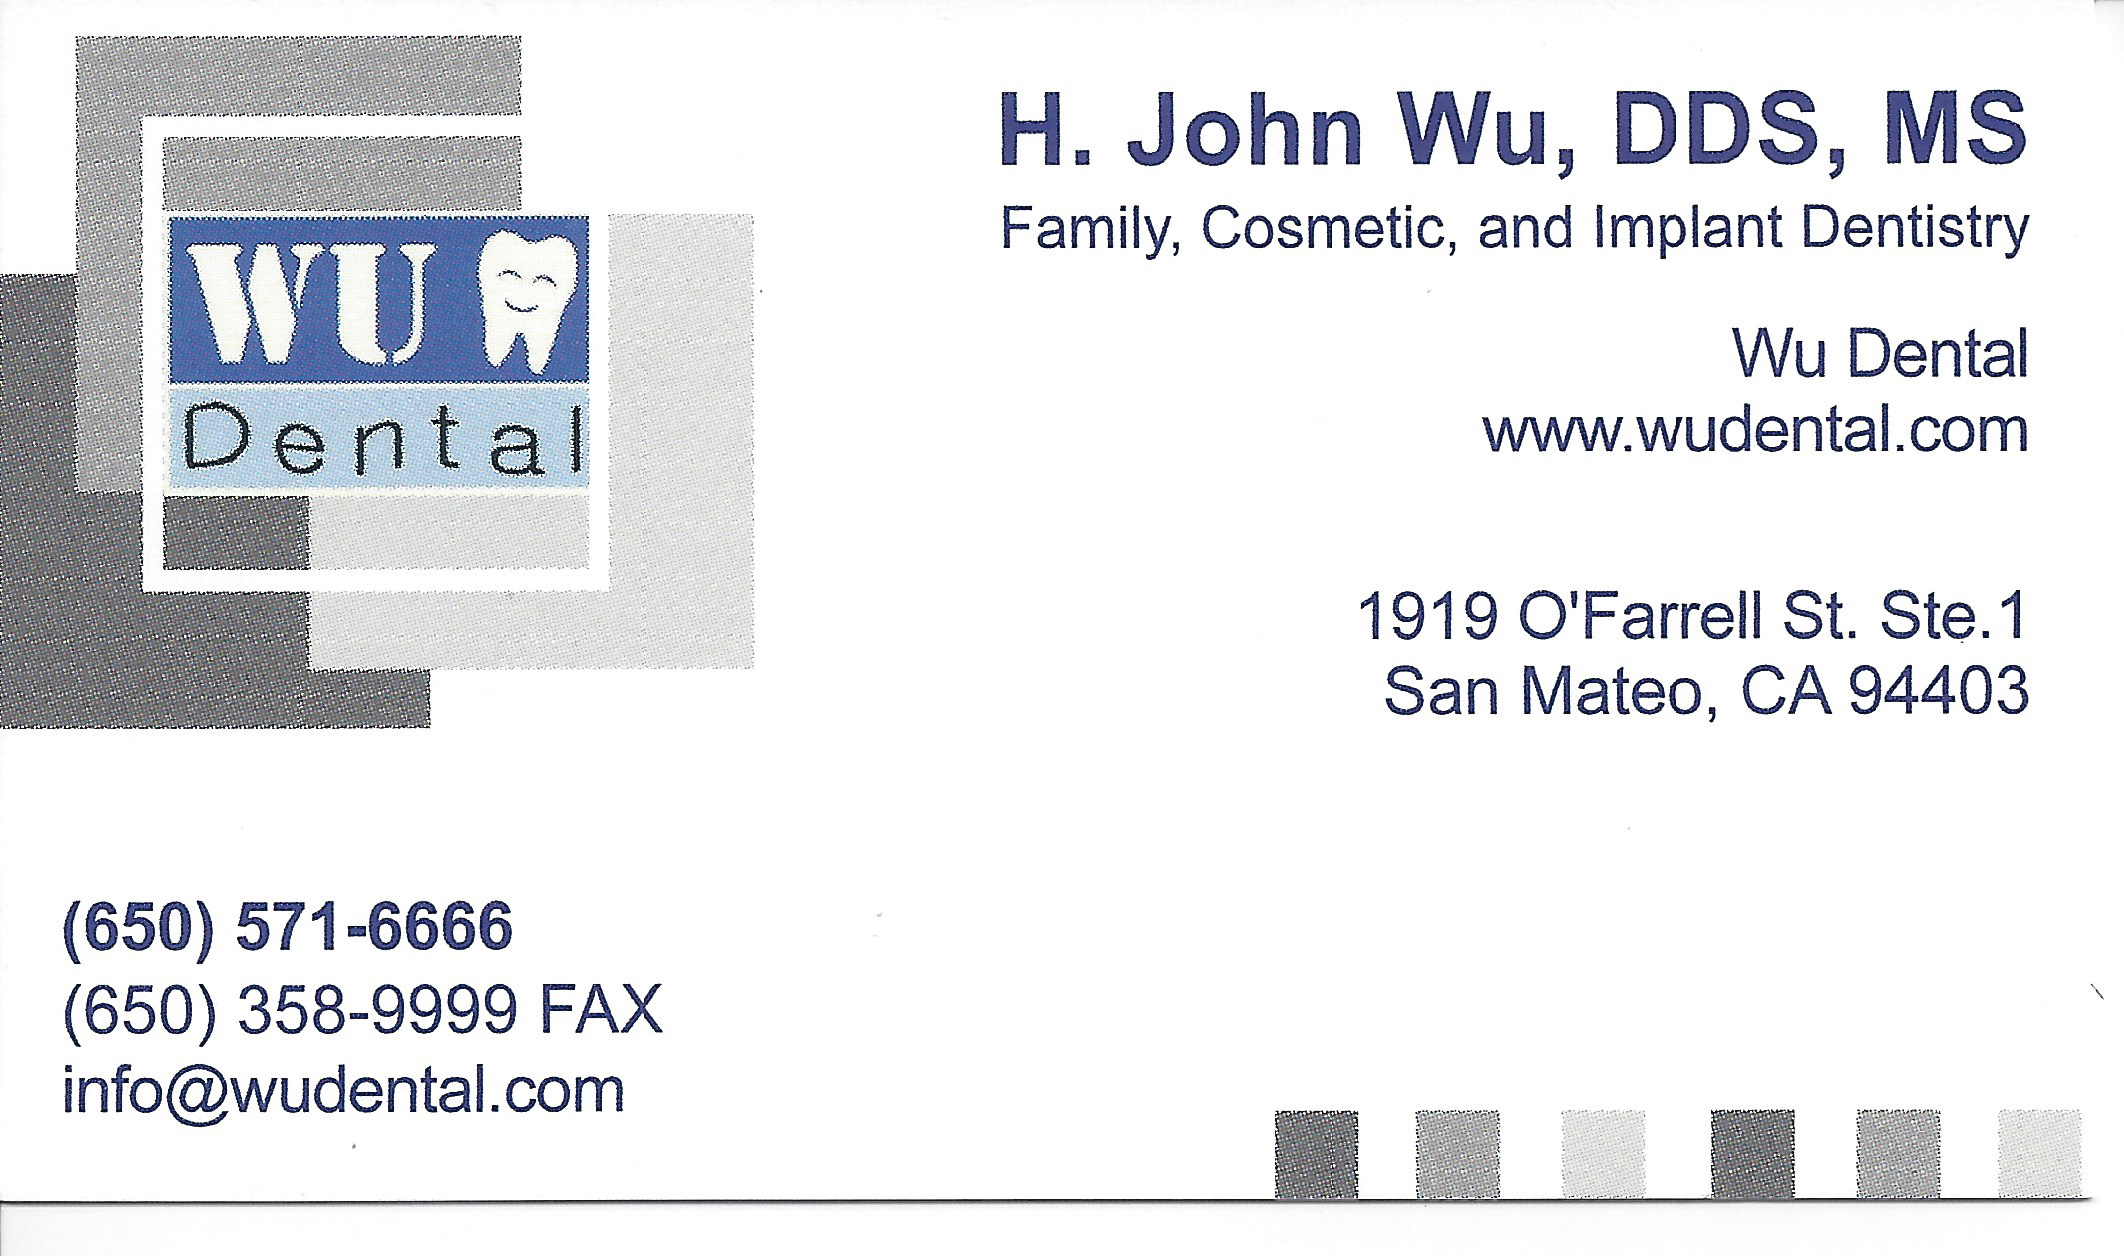 Wu Dental